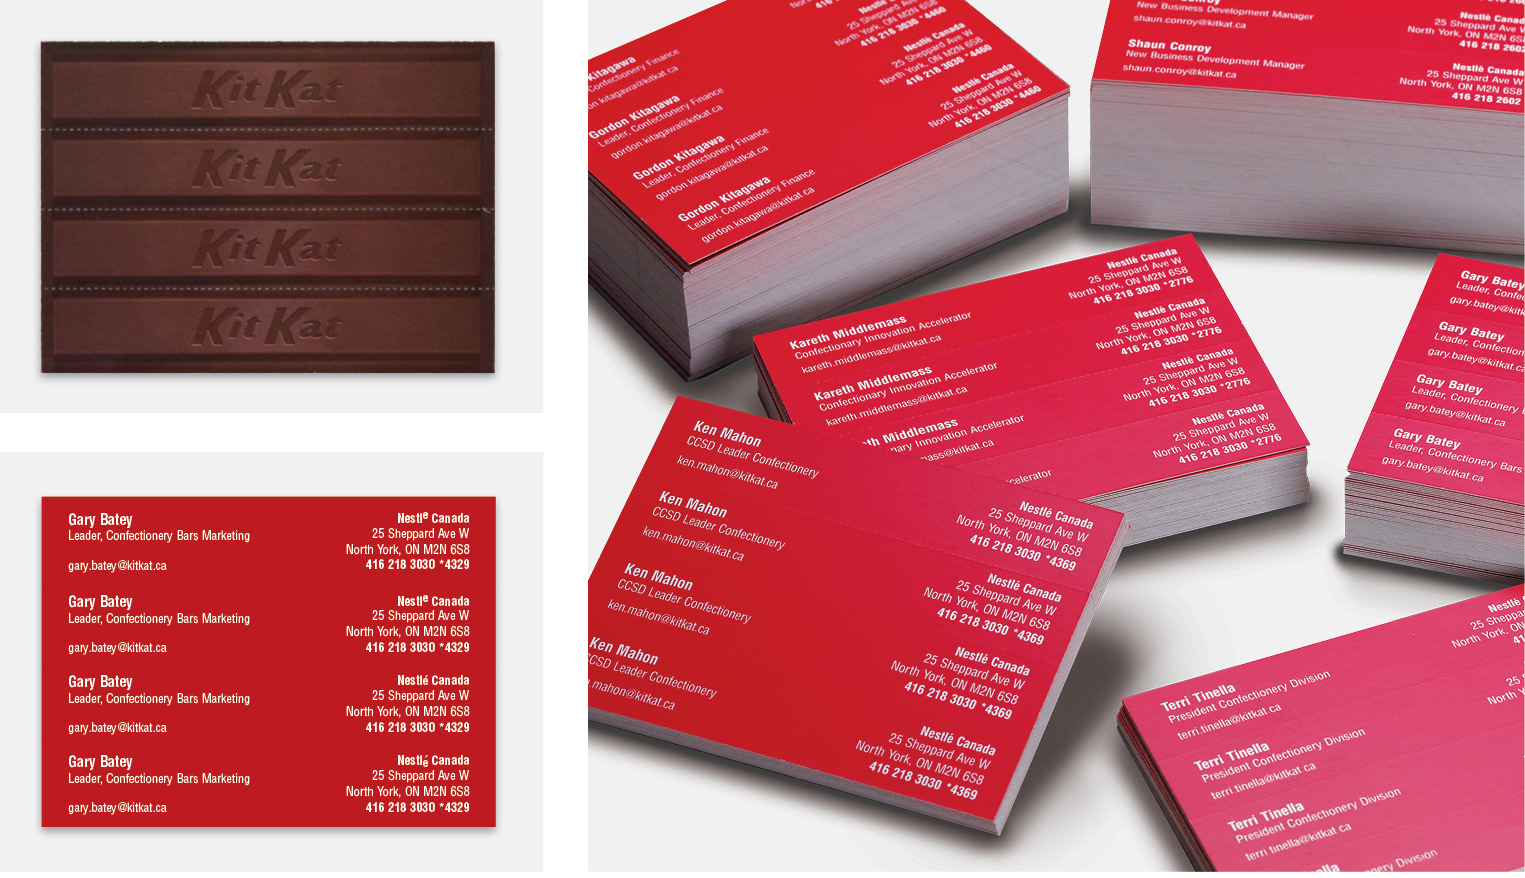 Rohnny kosan kit kat shareable business cards these cards were awarded by marketing and the one show reheart Choice Image